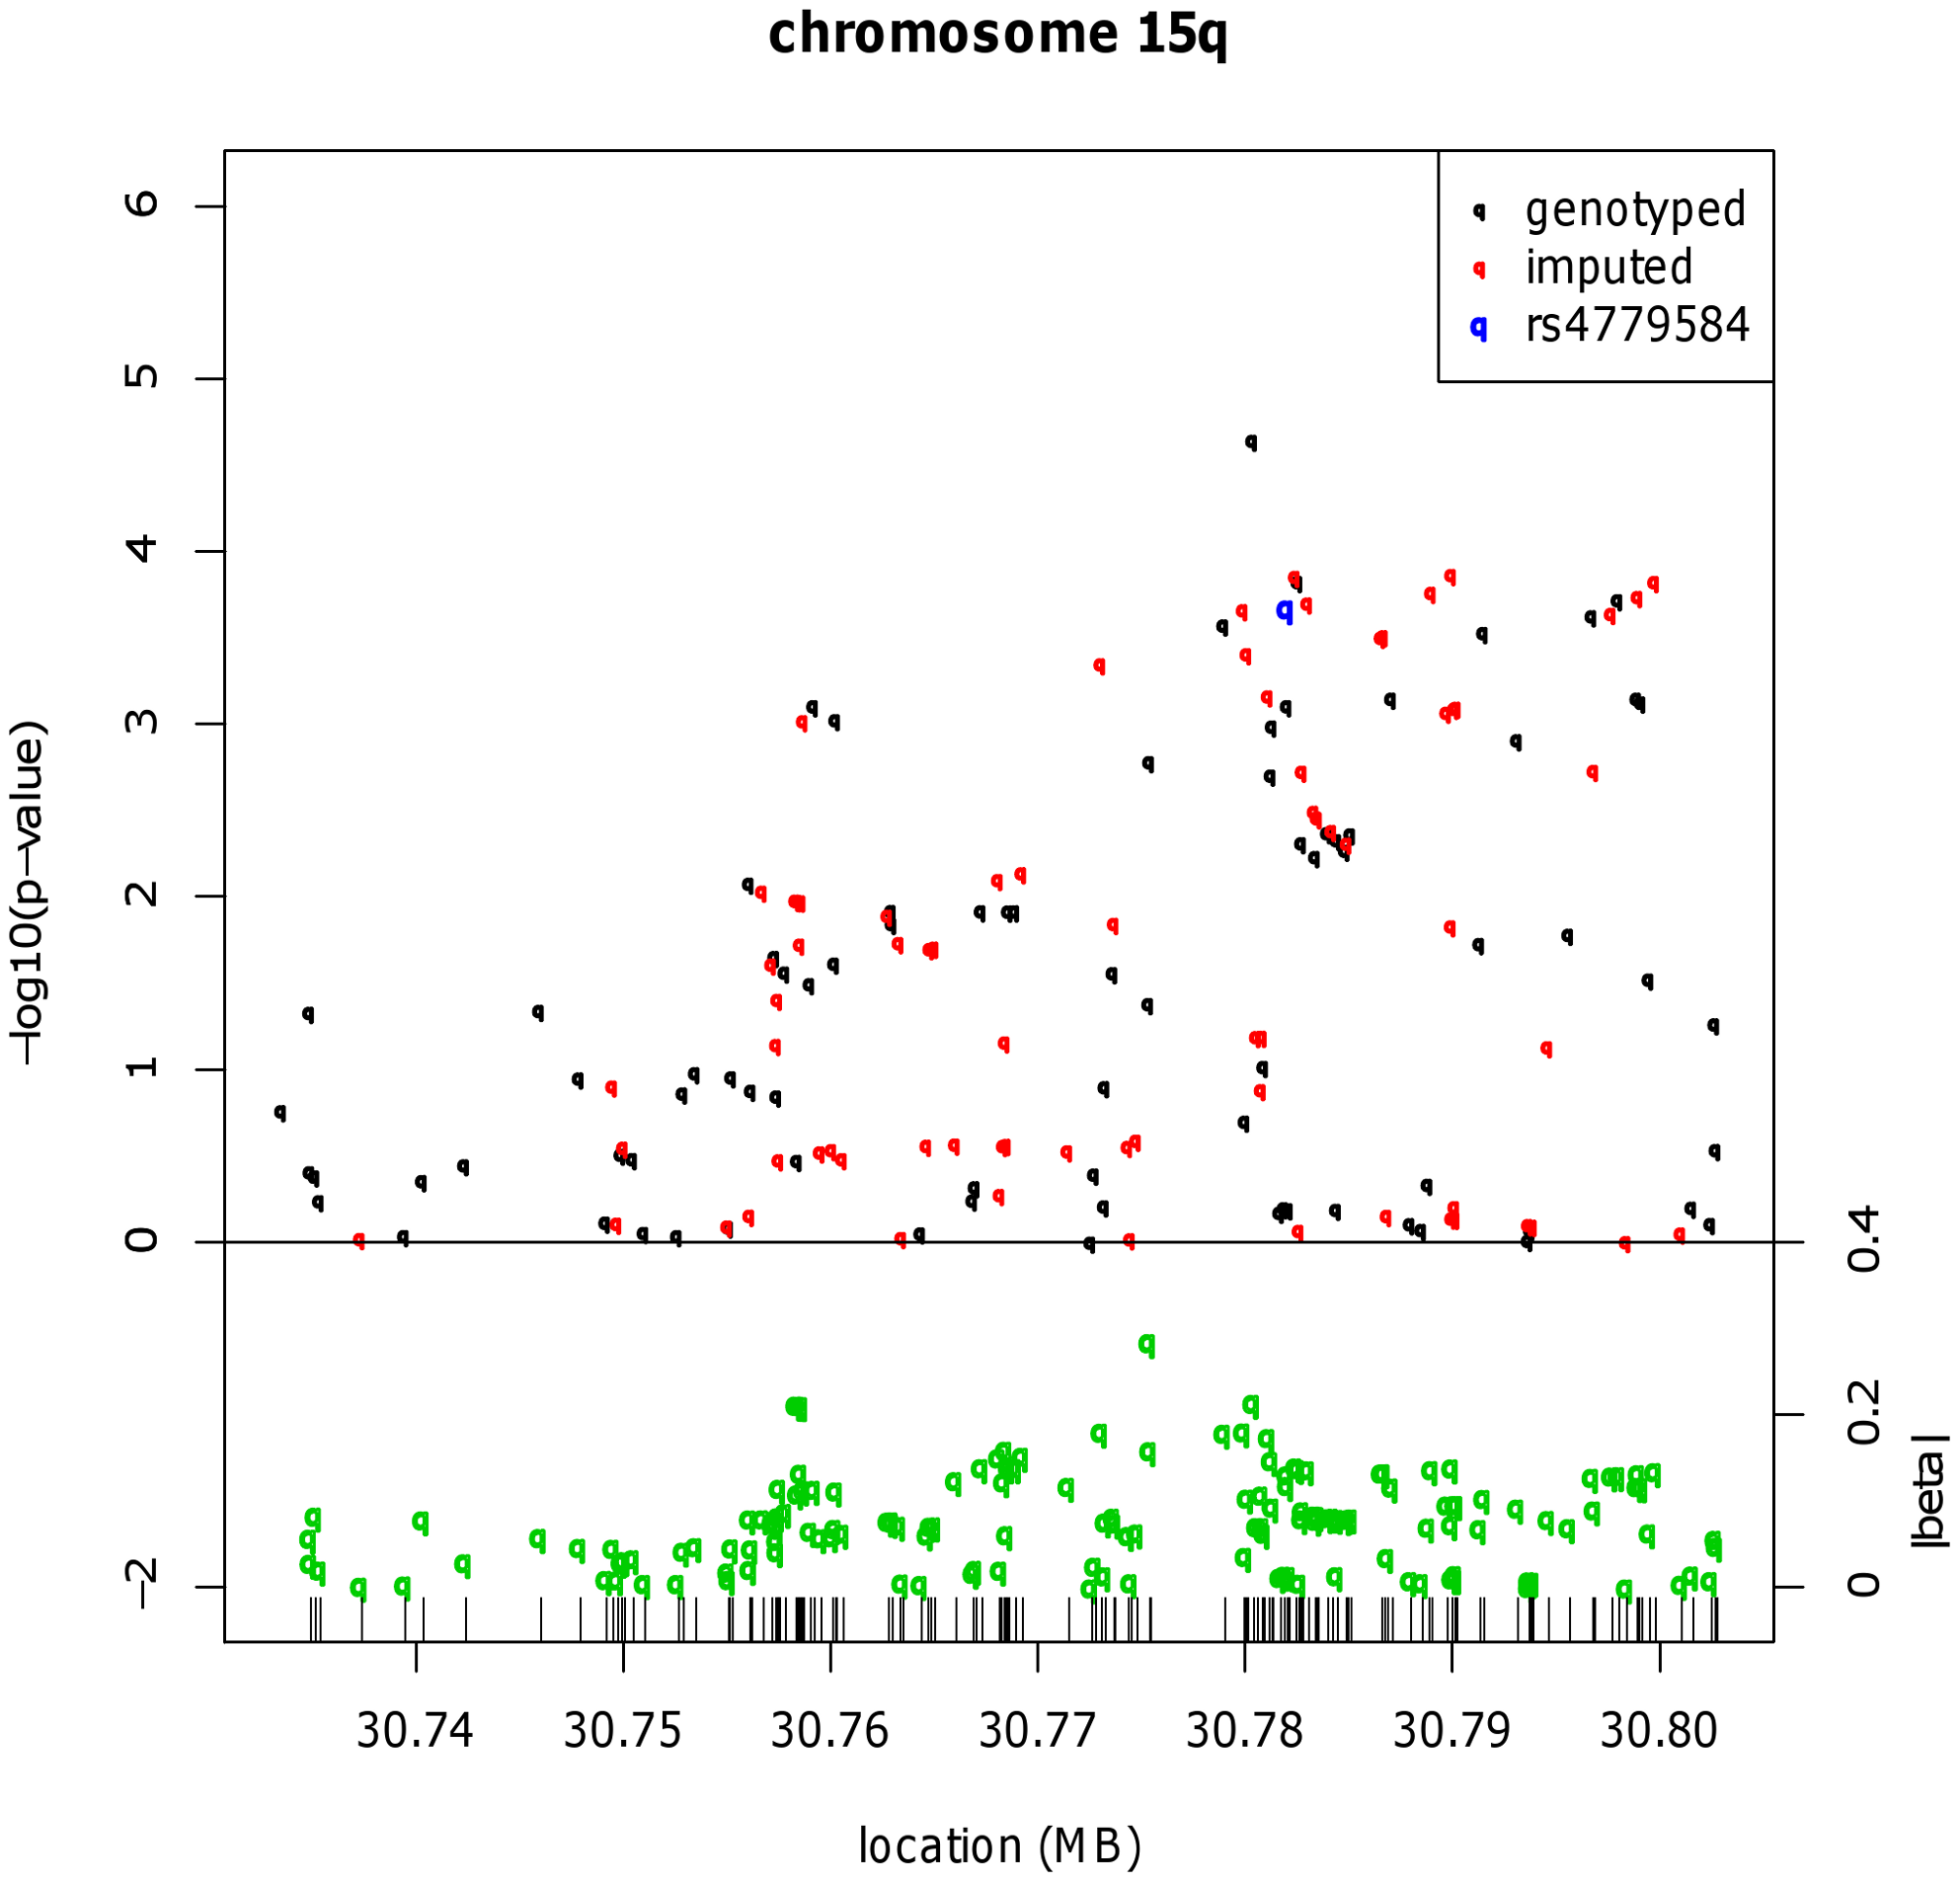 Fine mapping around the known CRC risk SNP close to <i>GREM1</i> (15q13.3).